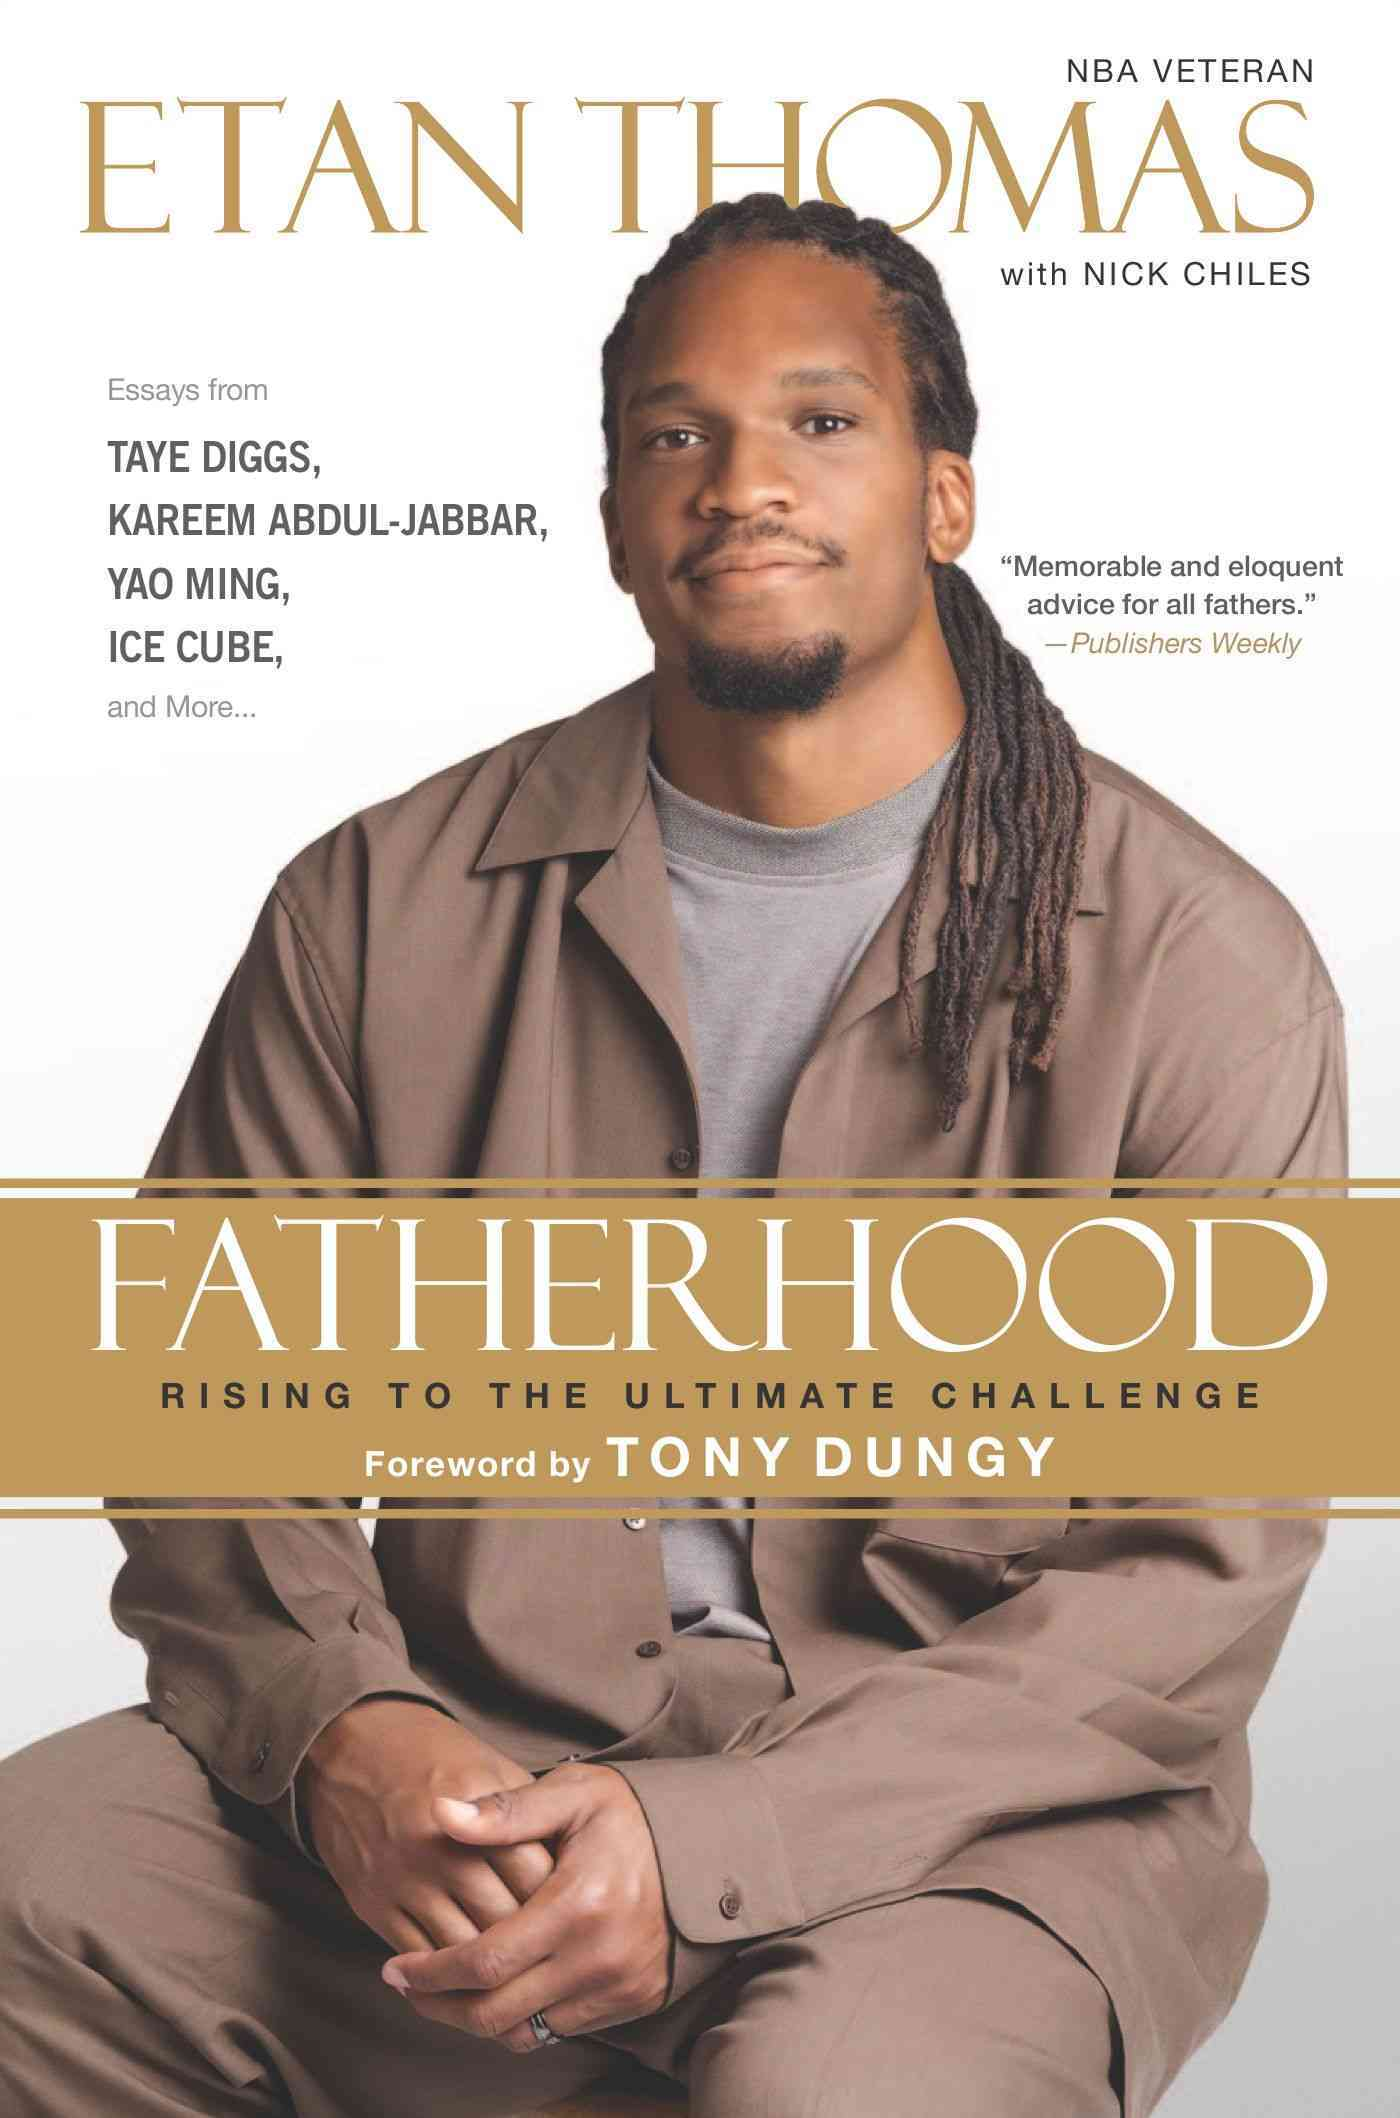 Fatherhood By Thomas, Etan/ Chiles, Nick/ Dungy, Tony (FRW)